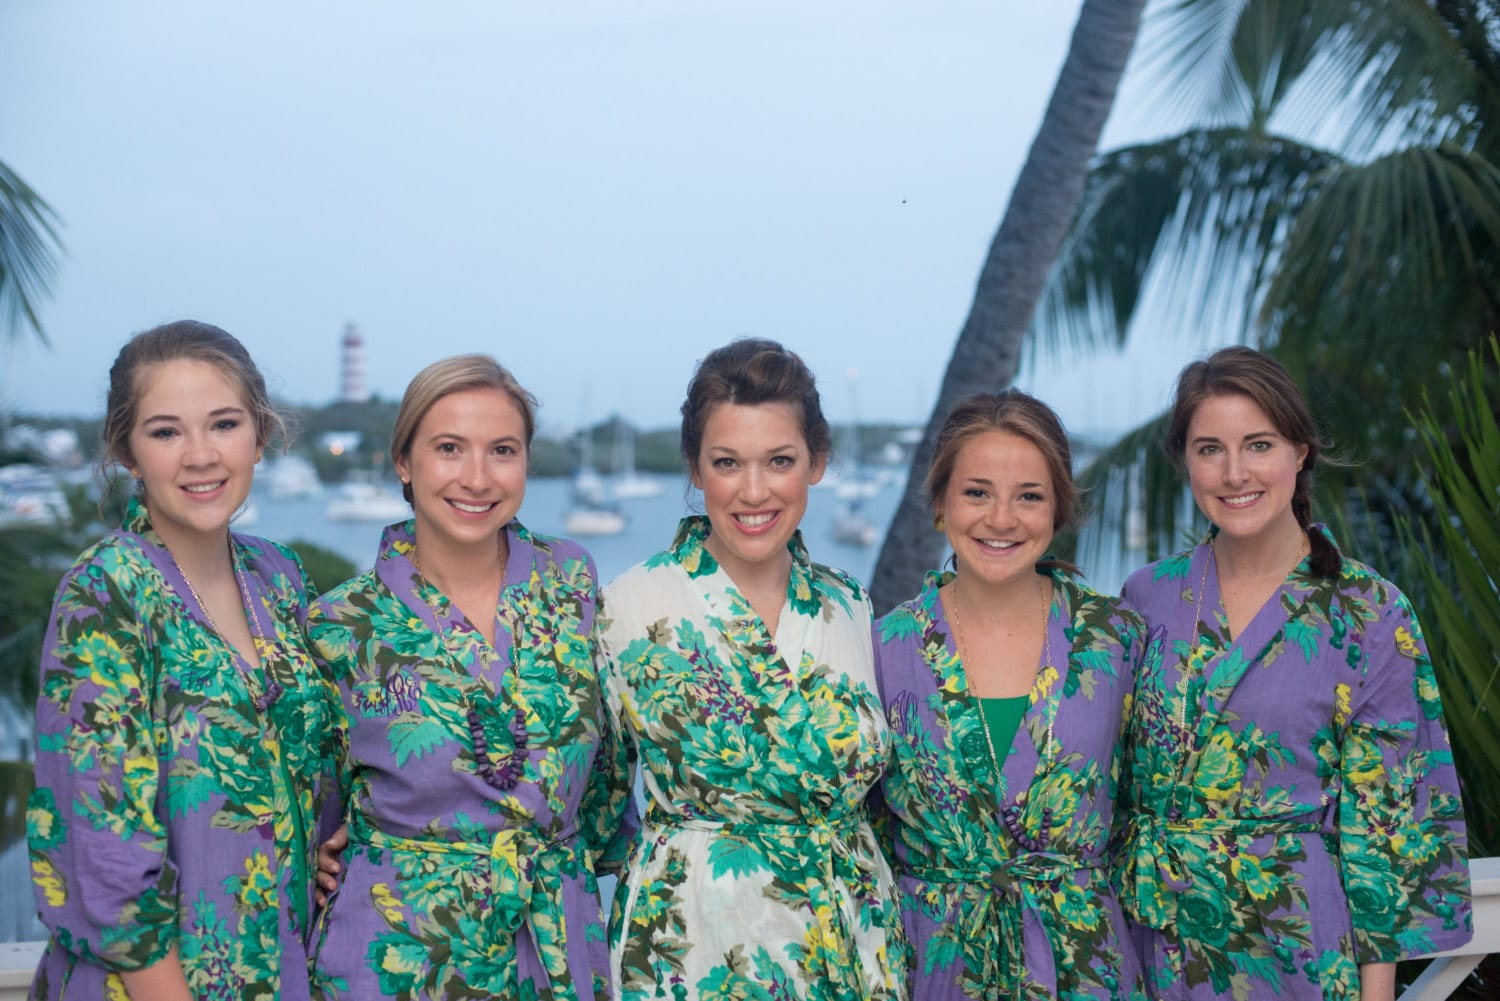 Kimono Crossover Robe. Bridesmaids gifts. Getting ready robes. Bridal Party Robes. Floral Robes. Dressing Gown plus size